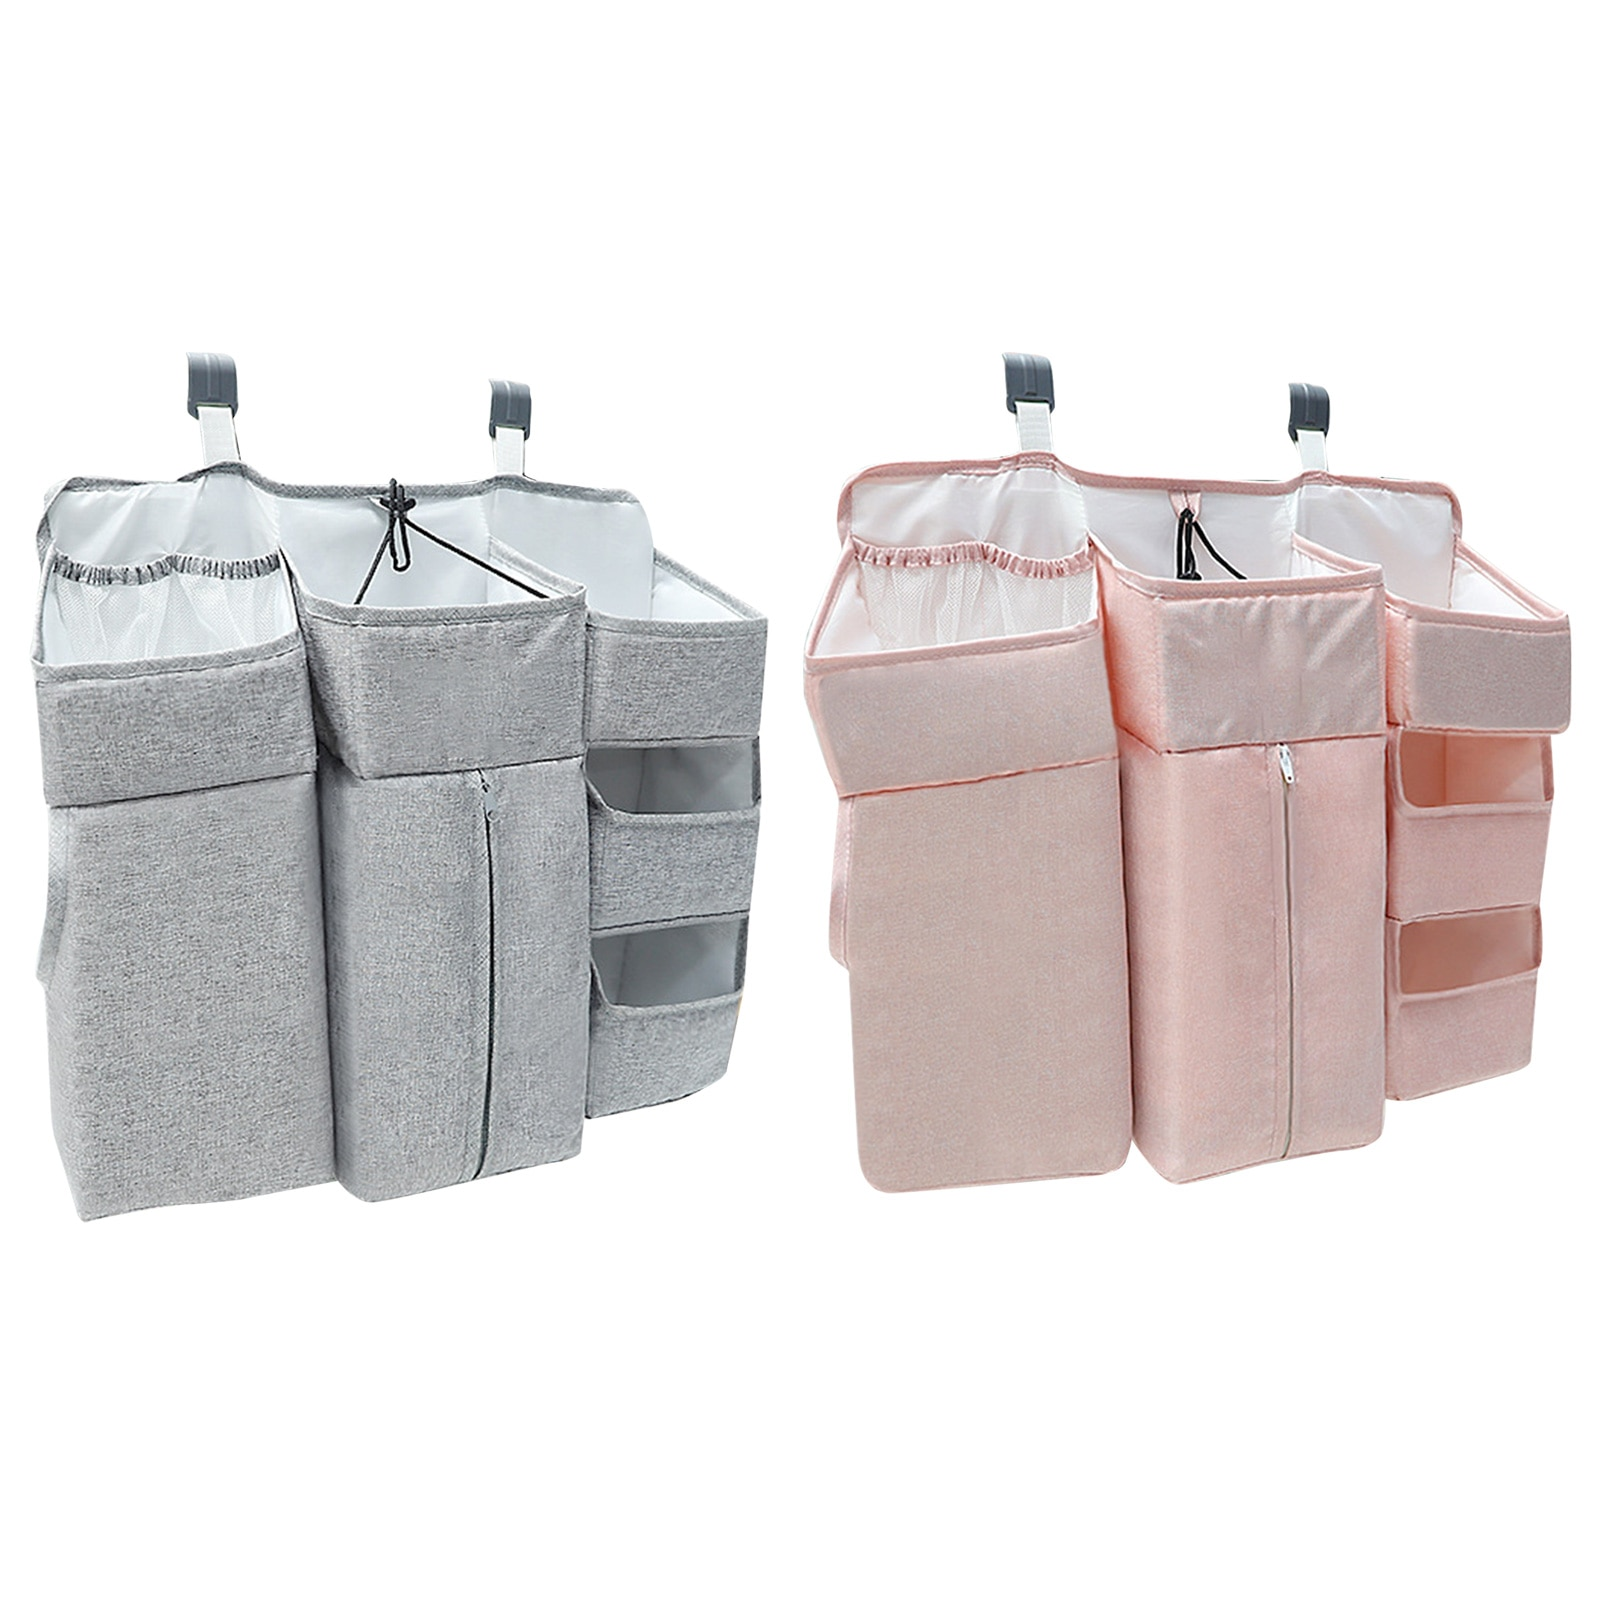 Portable Baby Crib Organizer Bed Hanging Bag For Baby Essential Thing Diaper Storage Bag Bedding Set